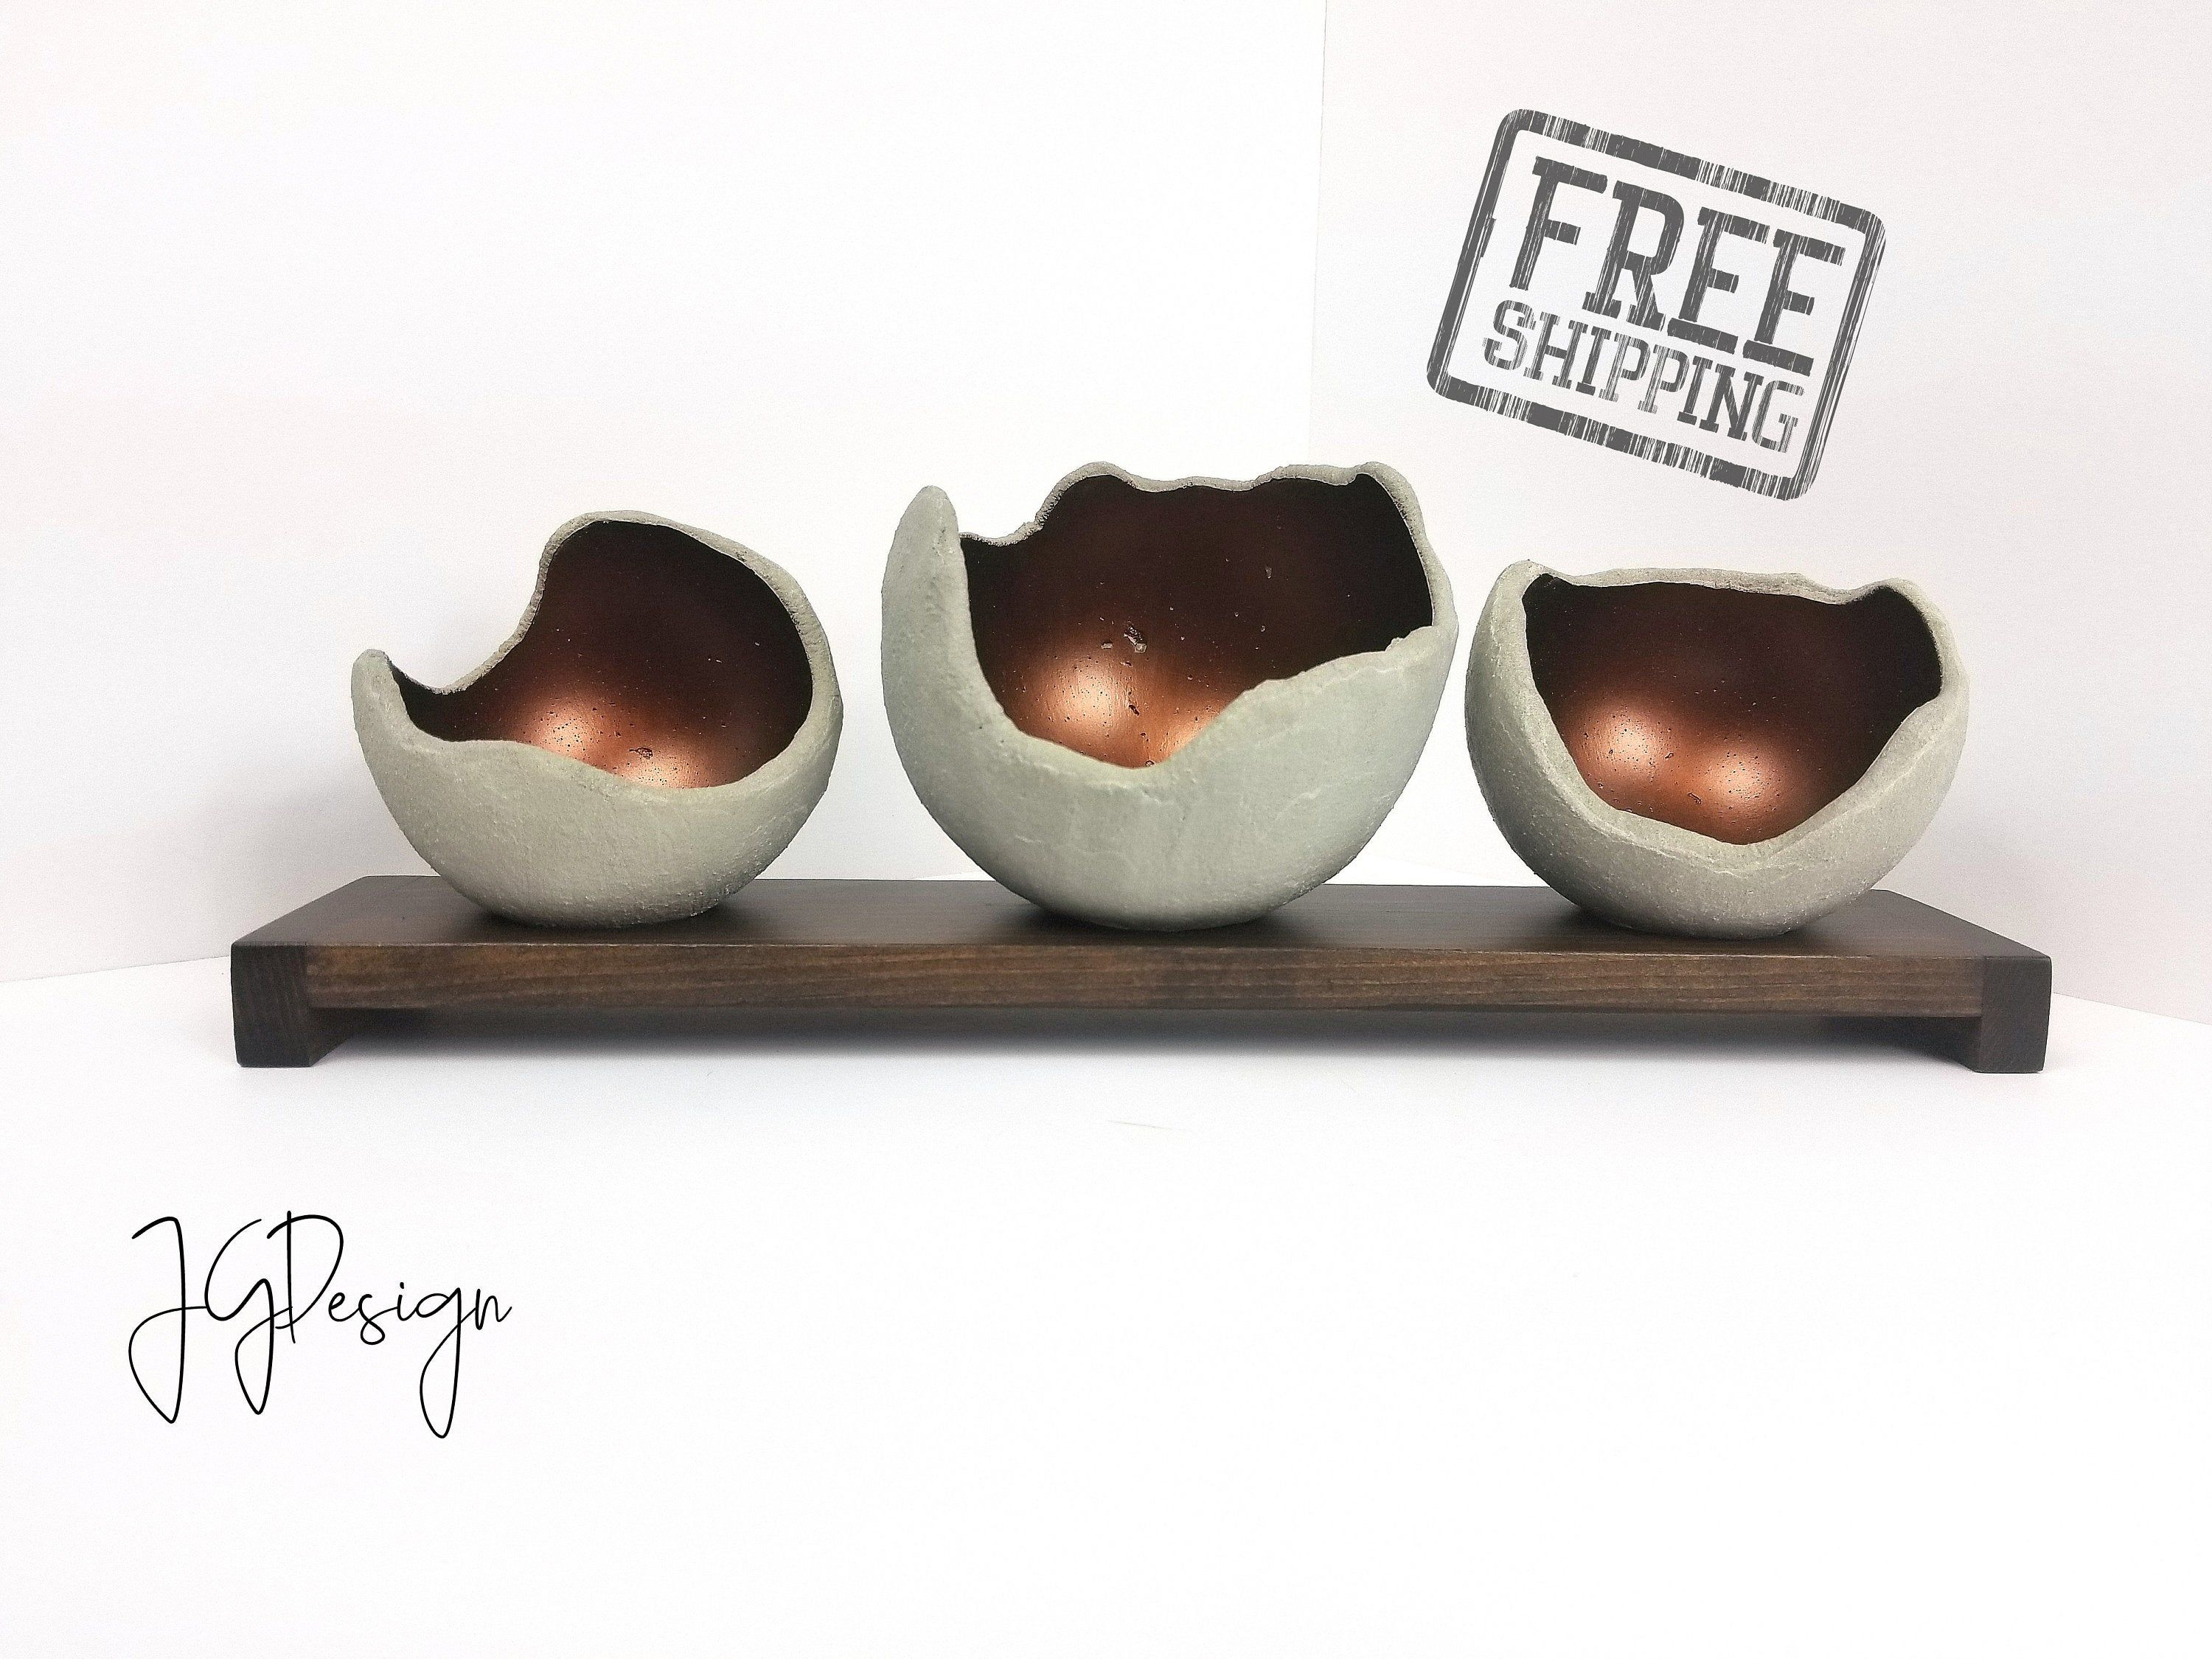 Copper Concrete Bowl Air Plant Holder Candle Holder Etsy In 2020 Concrete Bowl Air Plant Holder Candle Holders